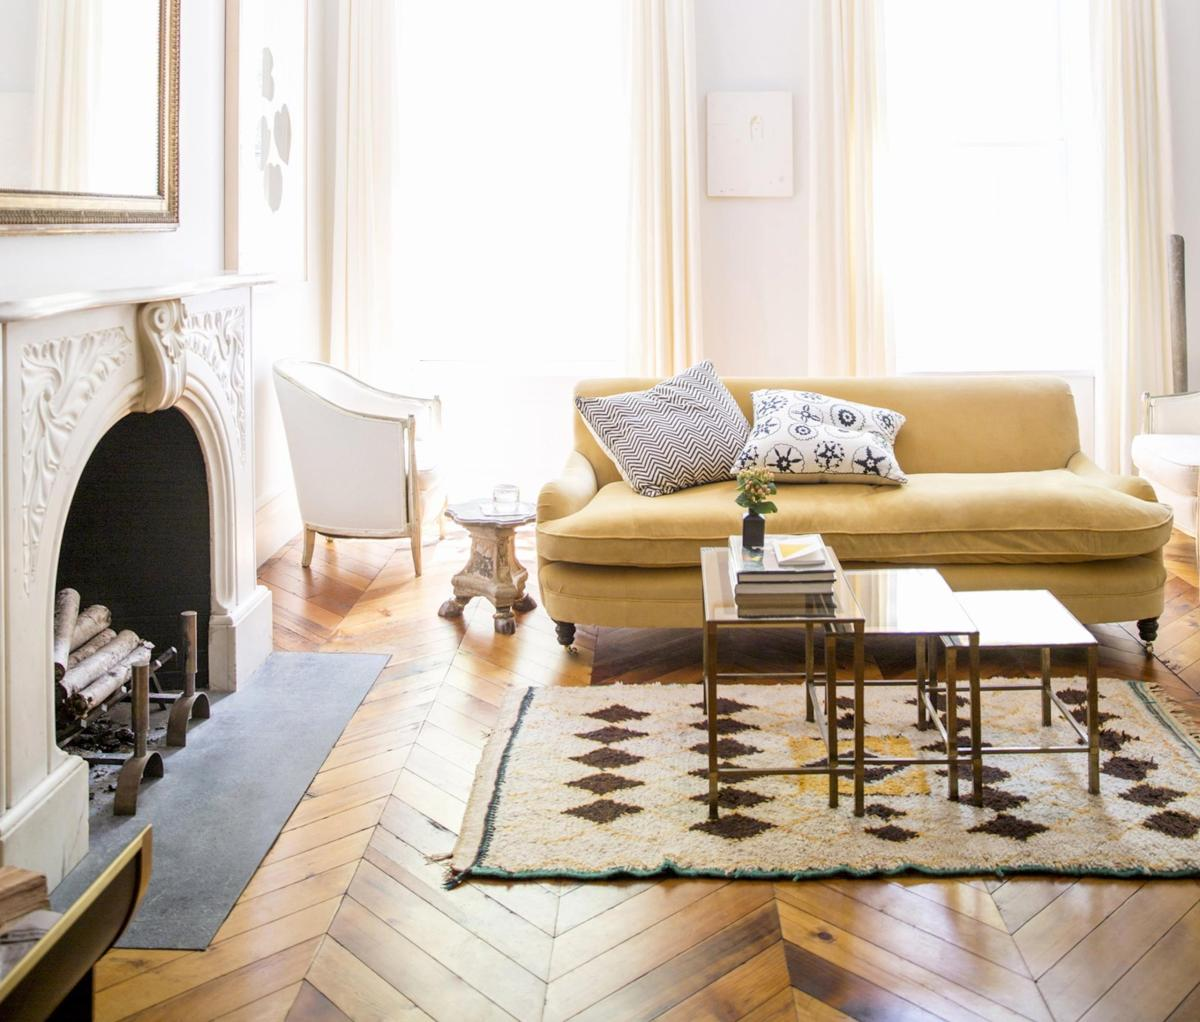 City Chic Living Room Decorating Ideas On a Budget 15